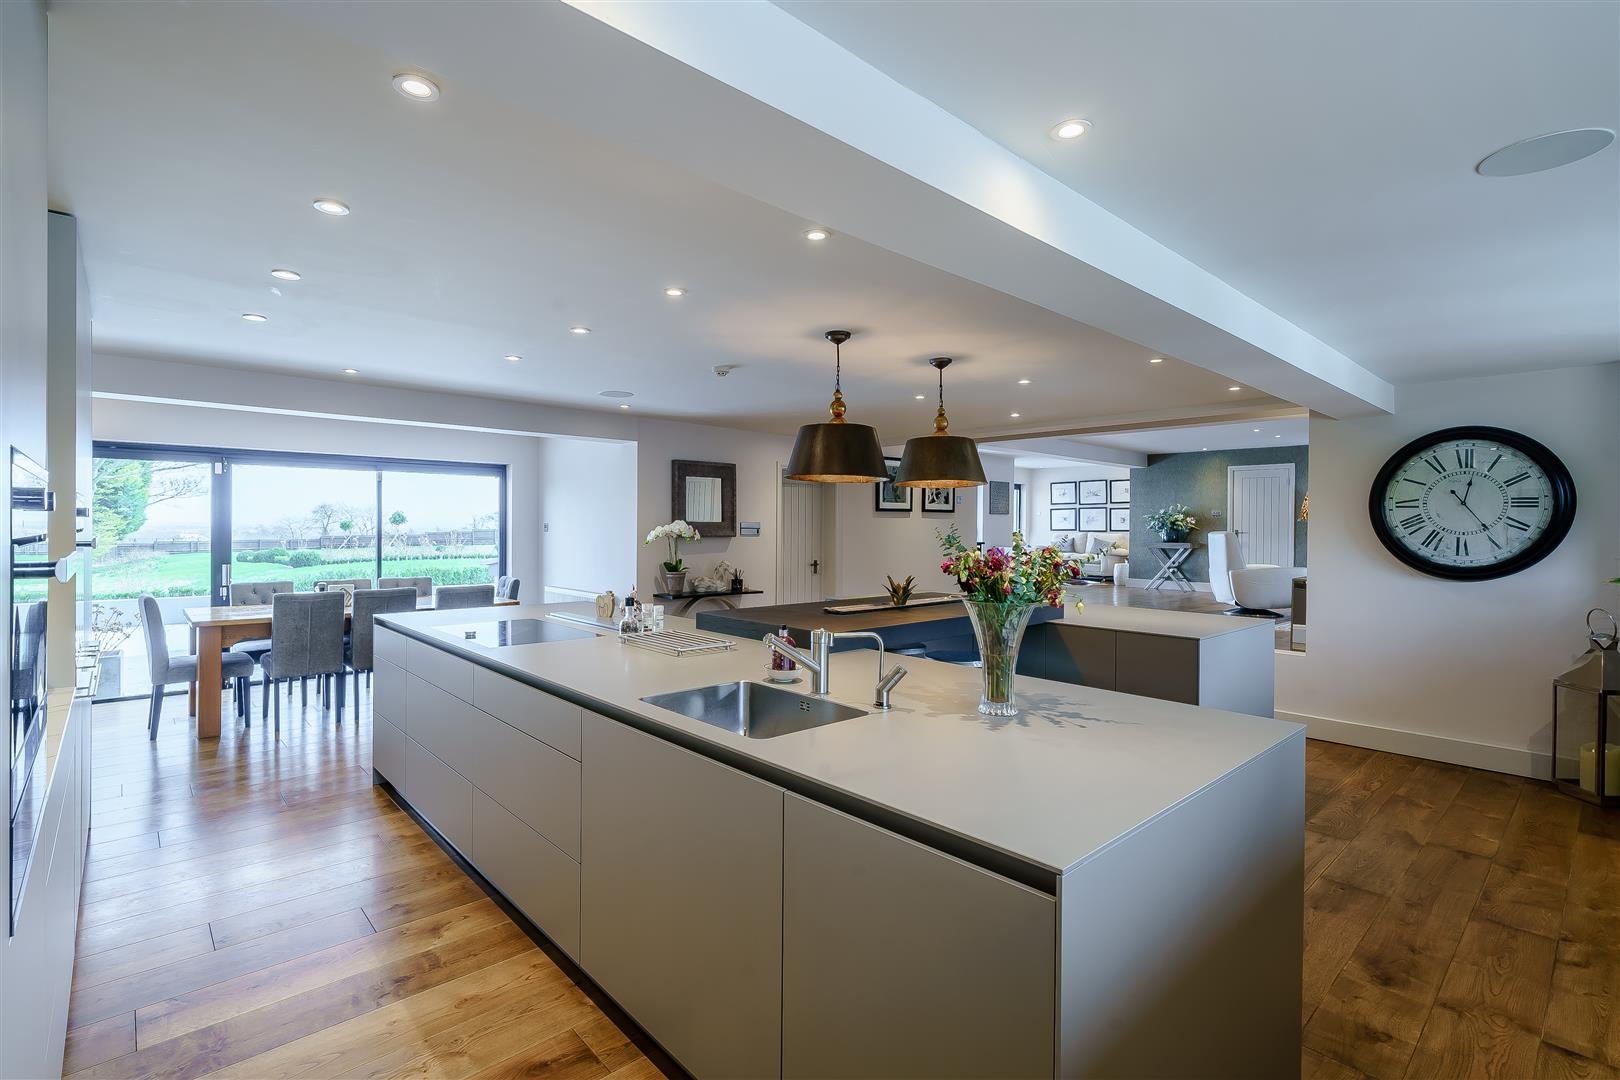 Rowstock Manor - Gallery Image 12 - Kitchen